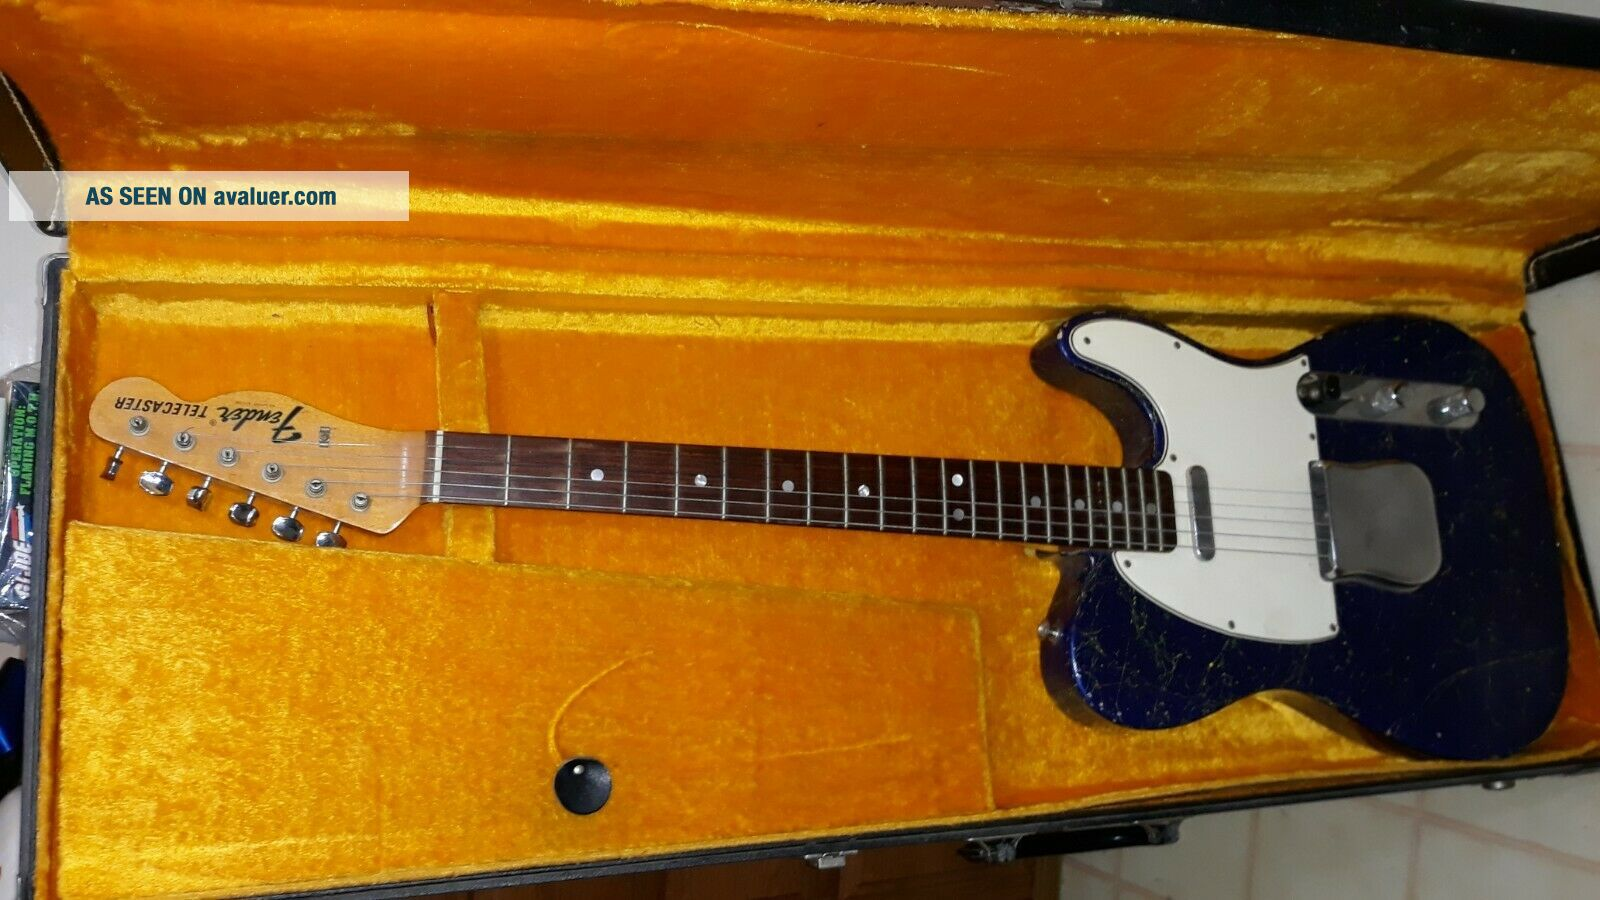 Vintage 1968 Fender Telecaster Metallic Blue Guitar w/ Case